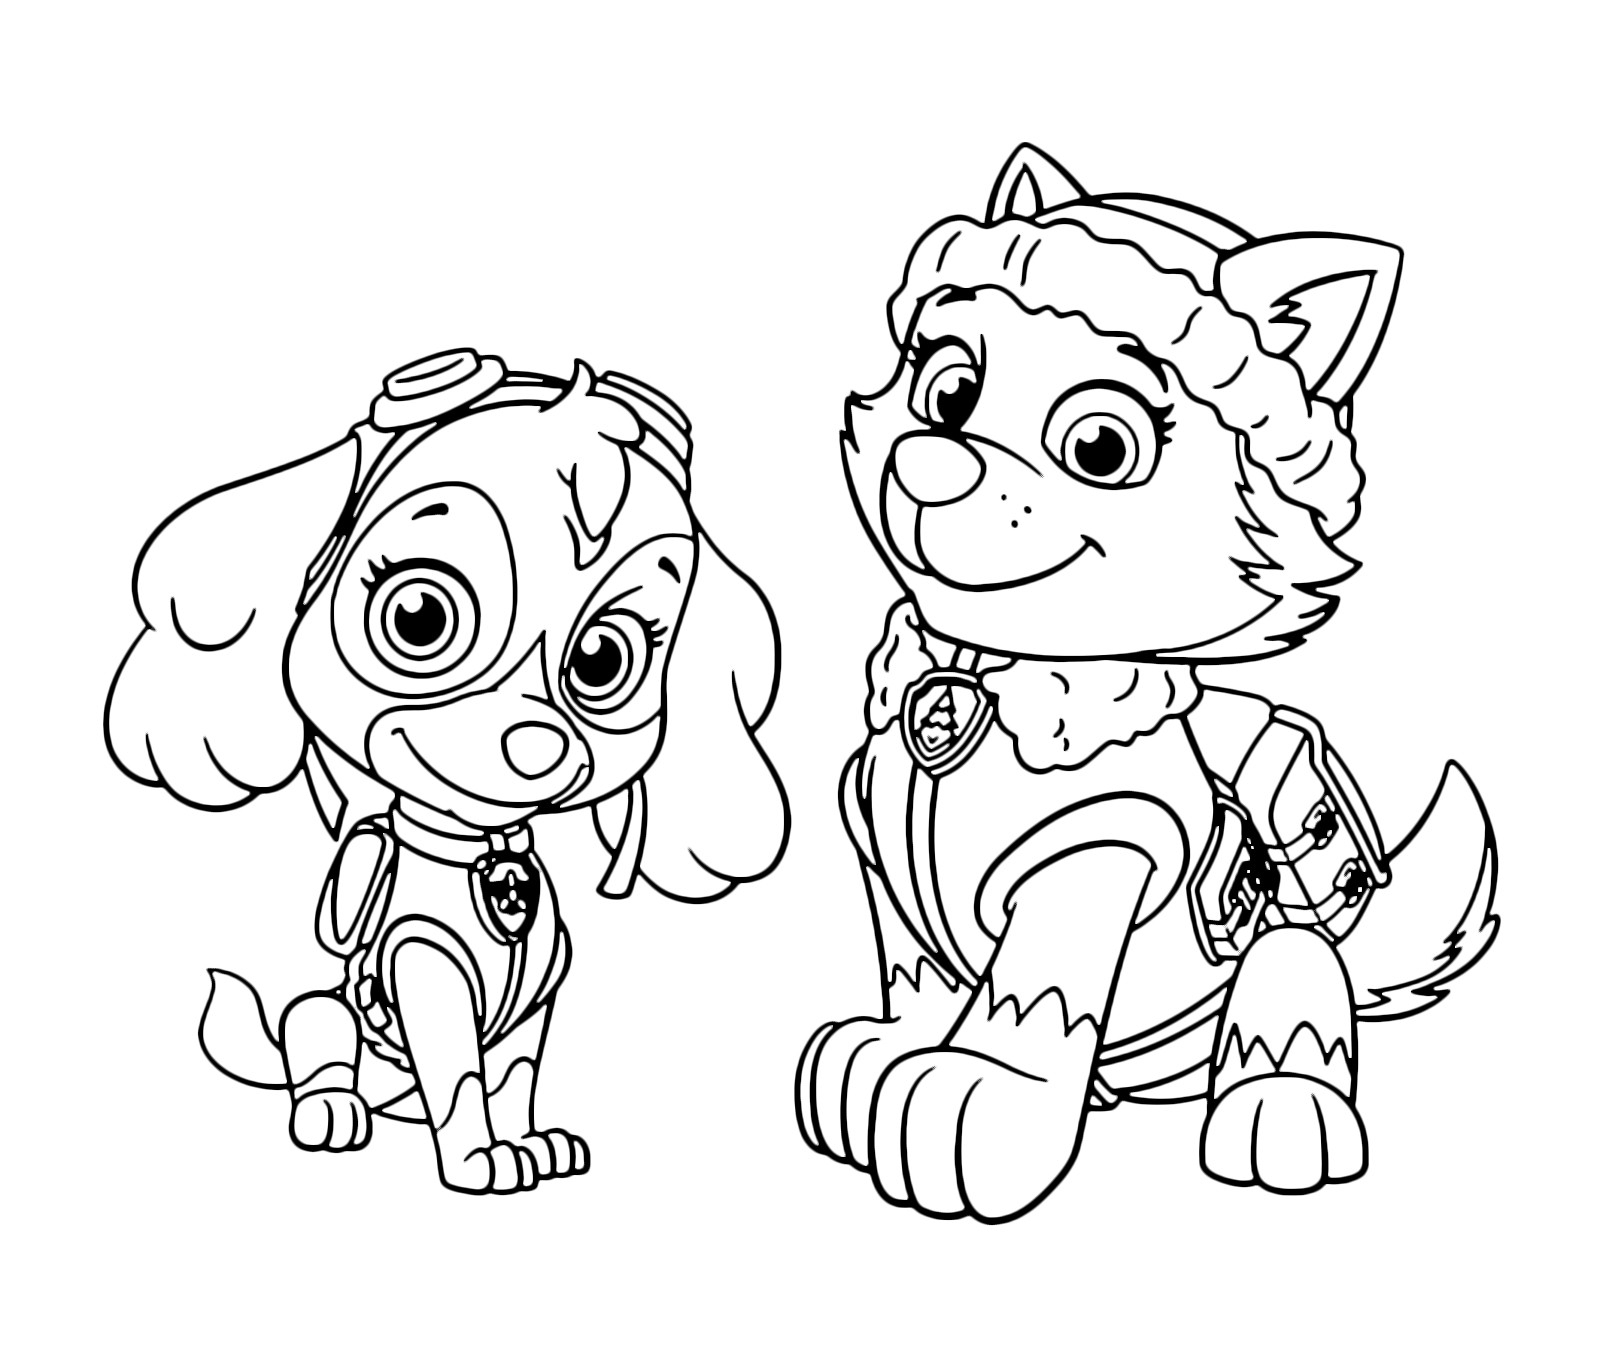 print paw patrol coloring pages paw patrol coloring pages birthday printable paw patrol pages coloring print